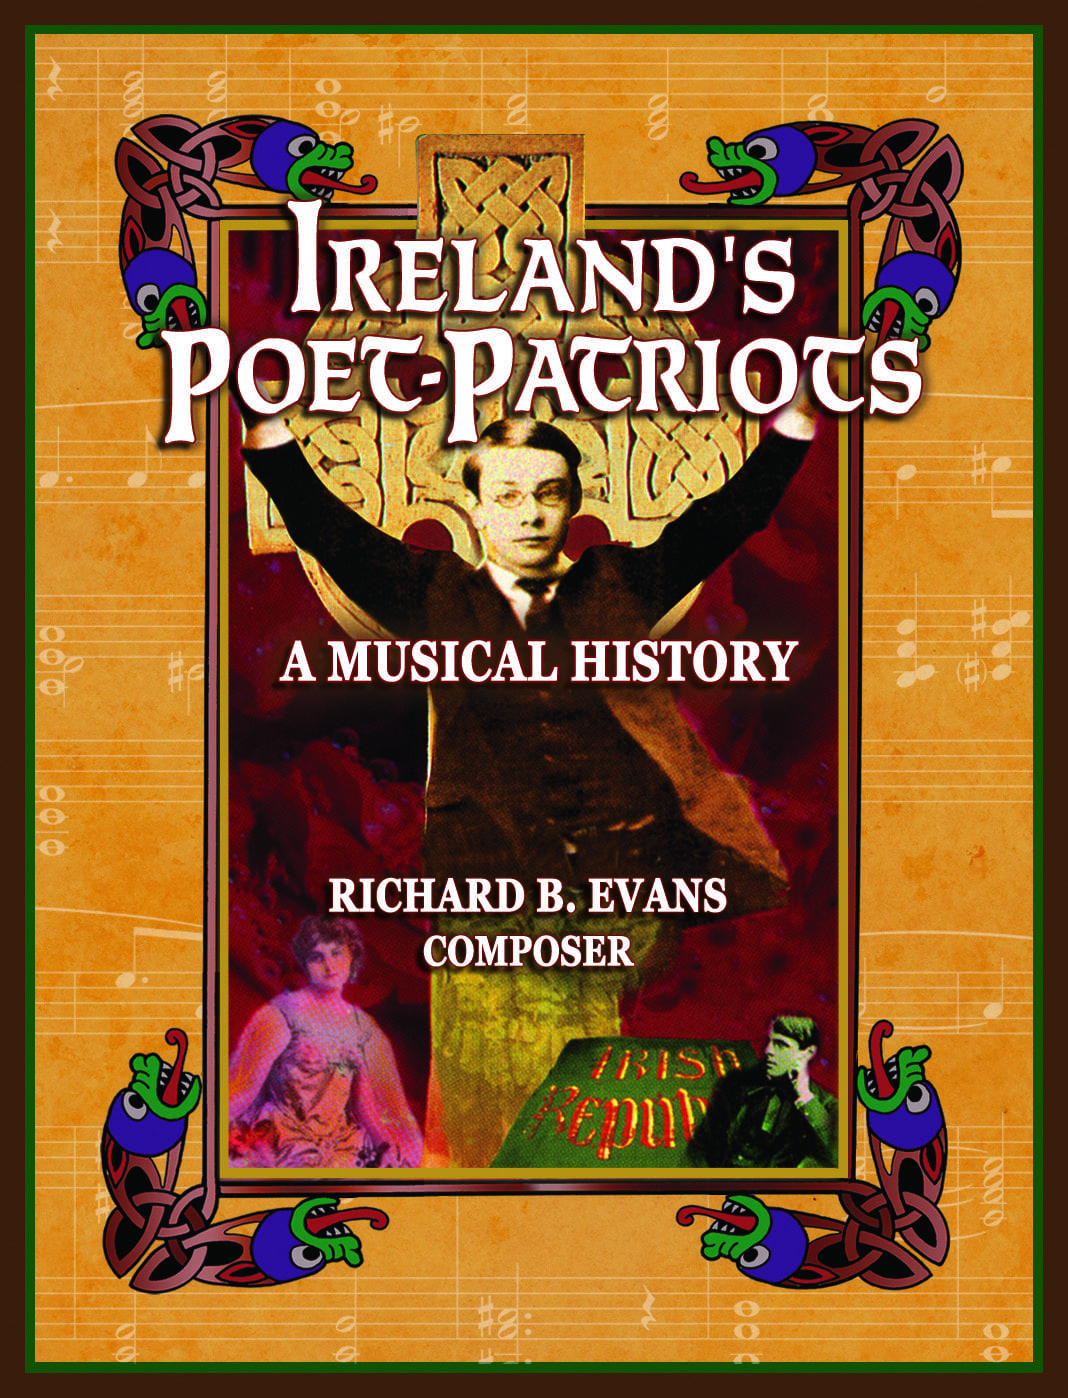 Ireland's Poet-Patriots, A Musical History